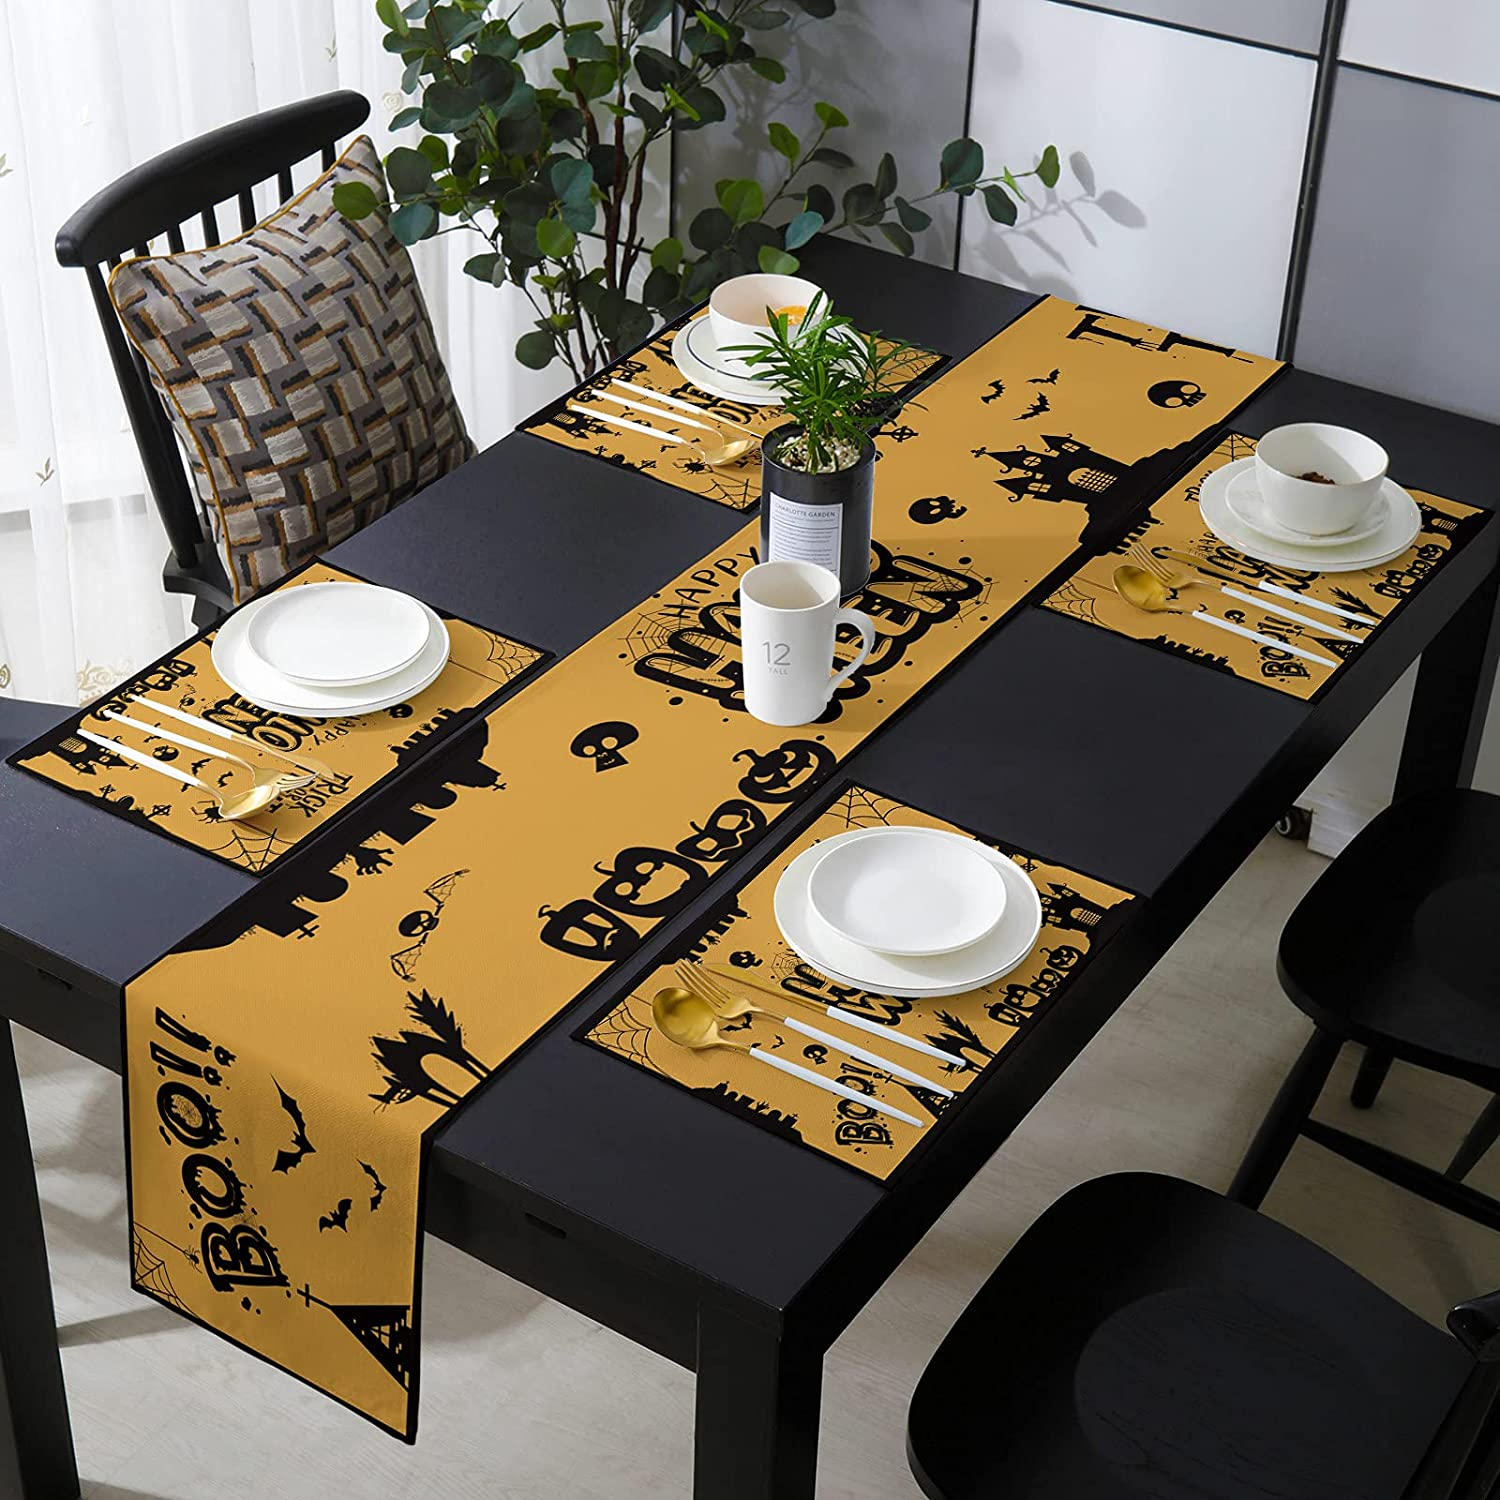 Savannan Burlap Placemat with Compatible Over item handling Happy Table Hal Runner San Francisco Mall